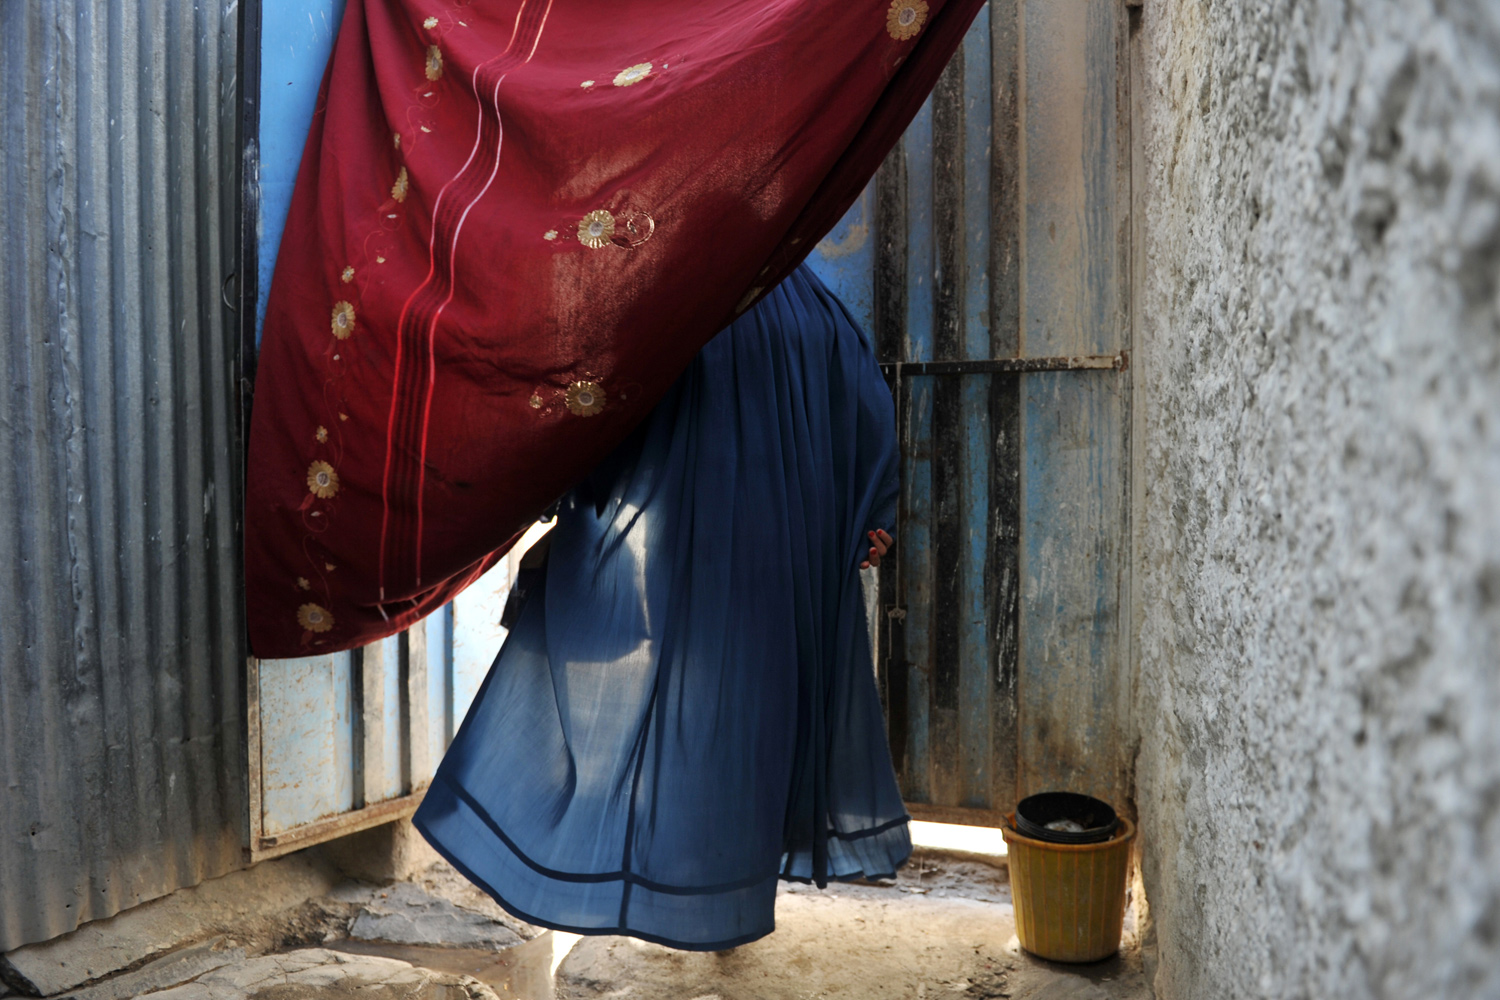 September 28, 2011. An Afghan burqa-clad woman leaves her home in Kabul. Ten years after the Taliban was toppled, most of Afghan women continue wearing burqas.